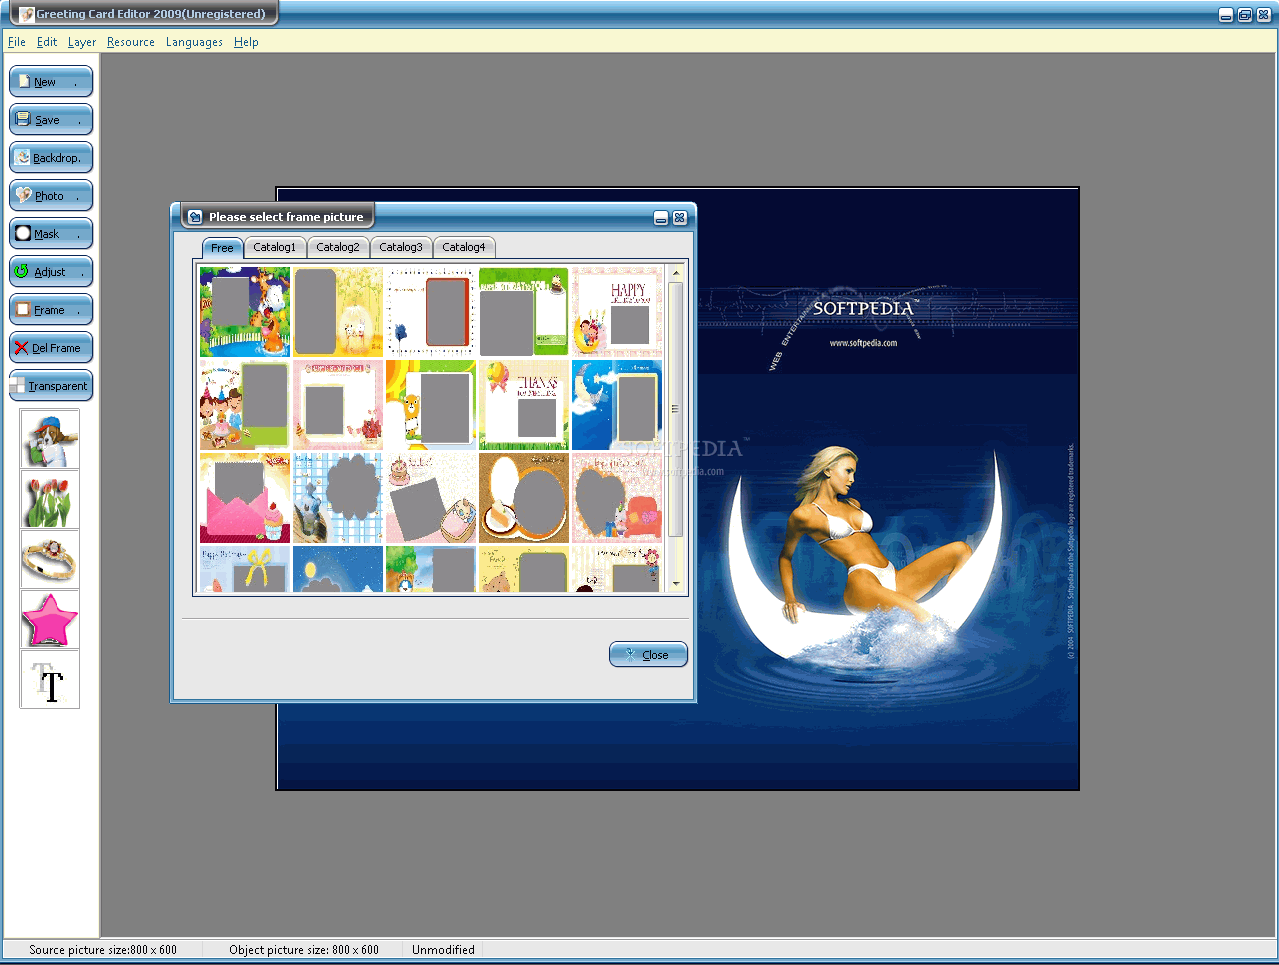 Download Greeting Card Editor 200924